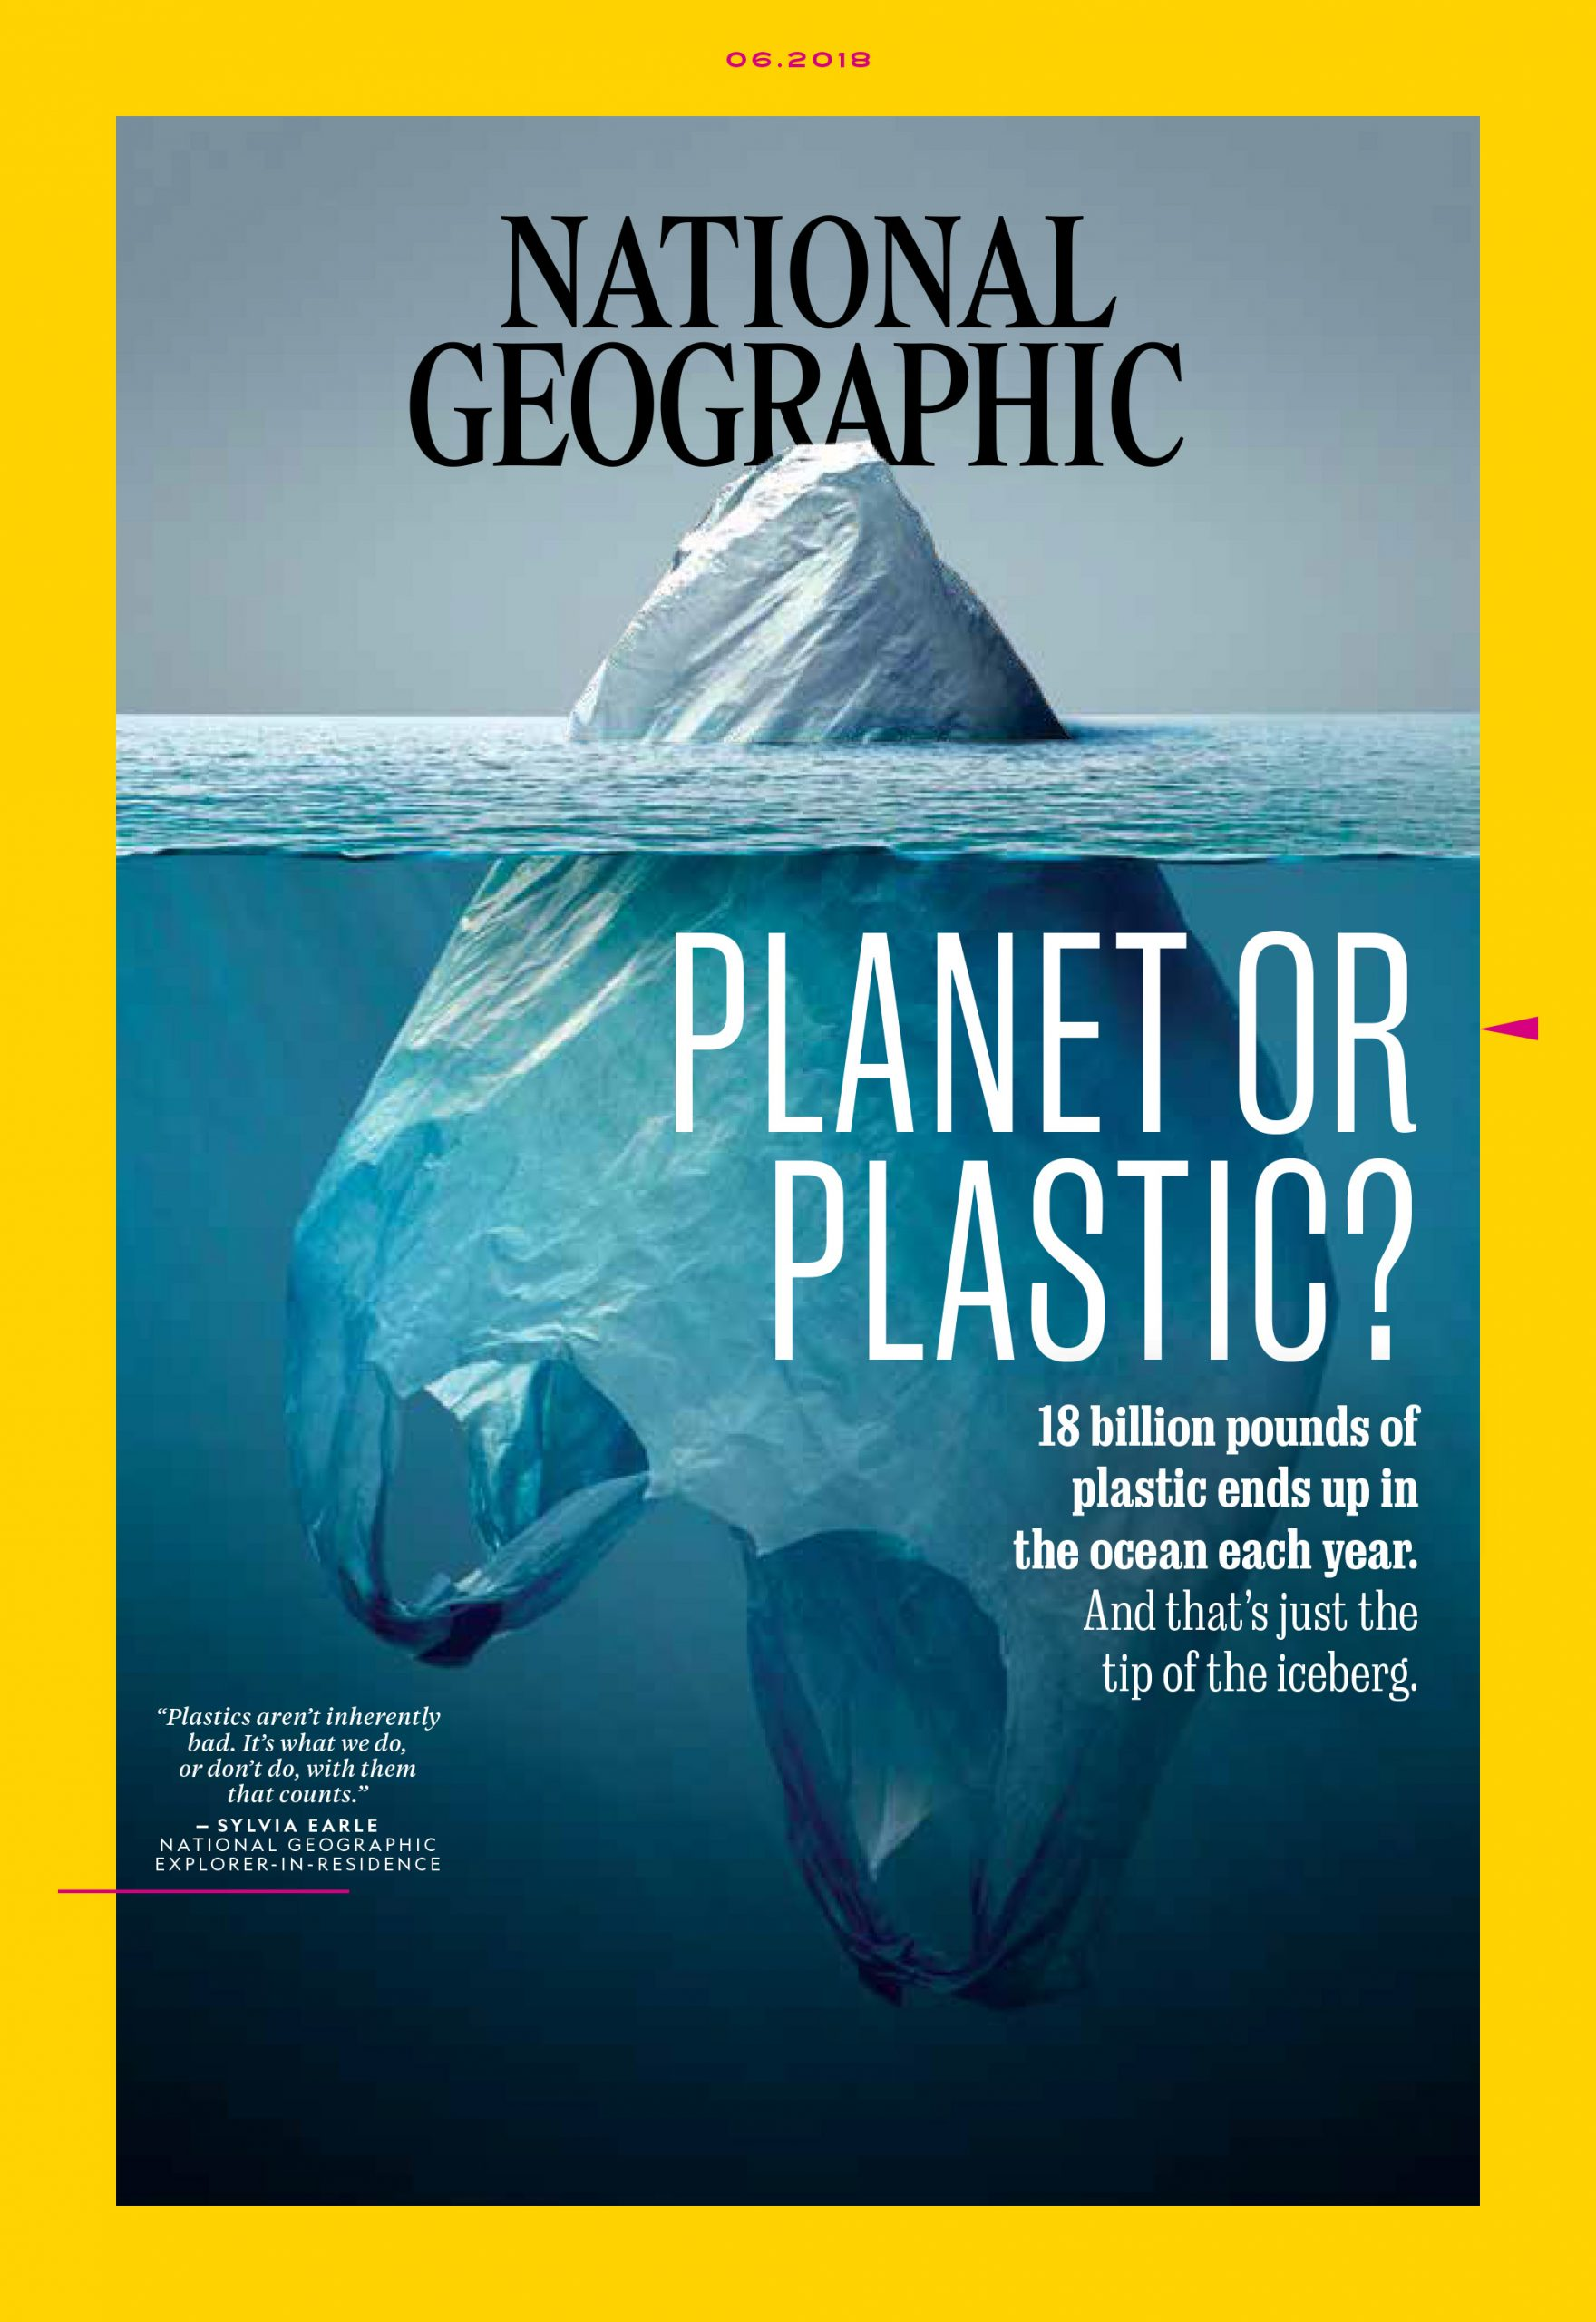 Photo of National Geographic June 2018 Cover